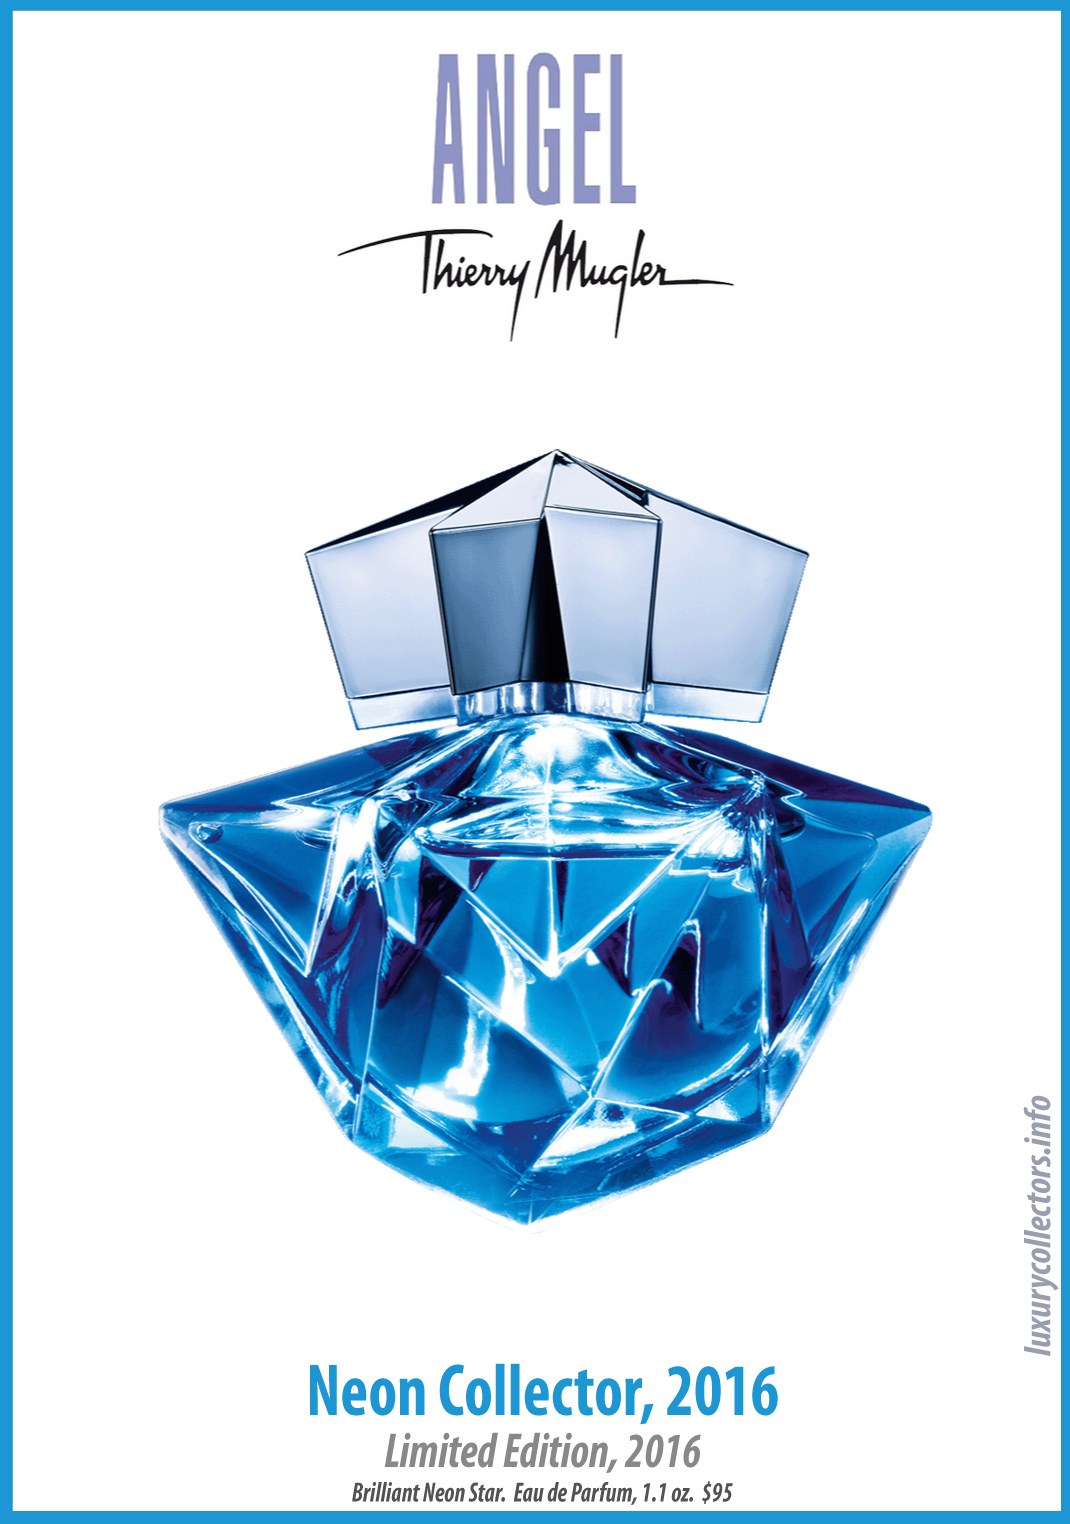 Thierry Mugler Angel Perfume Collector's Limited Edition Bottle 2016 Neon Collector